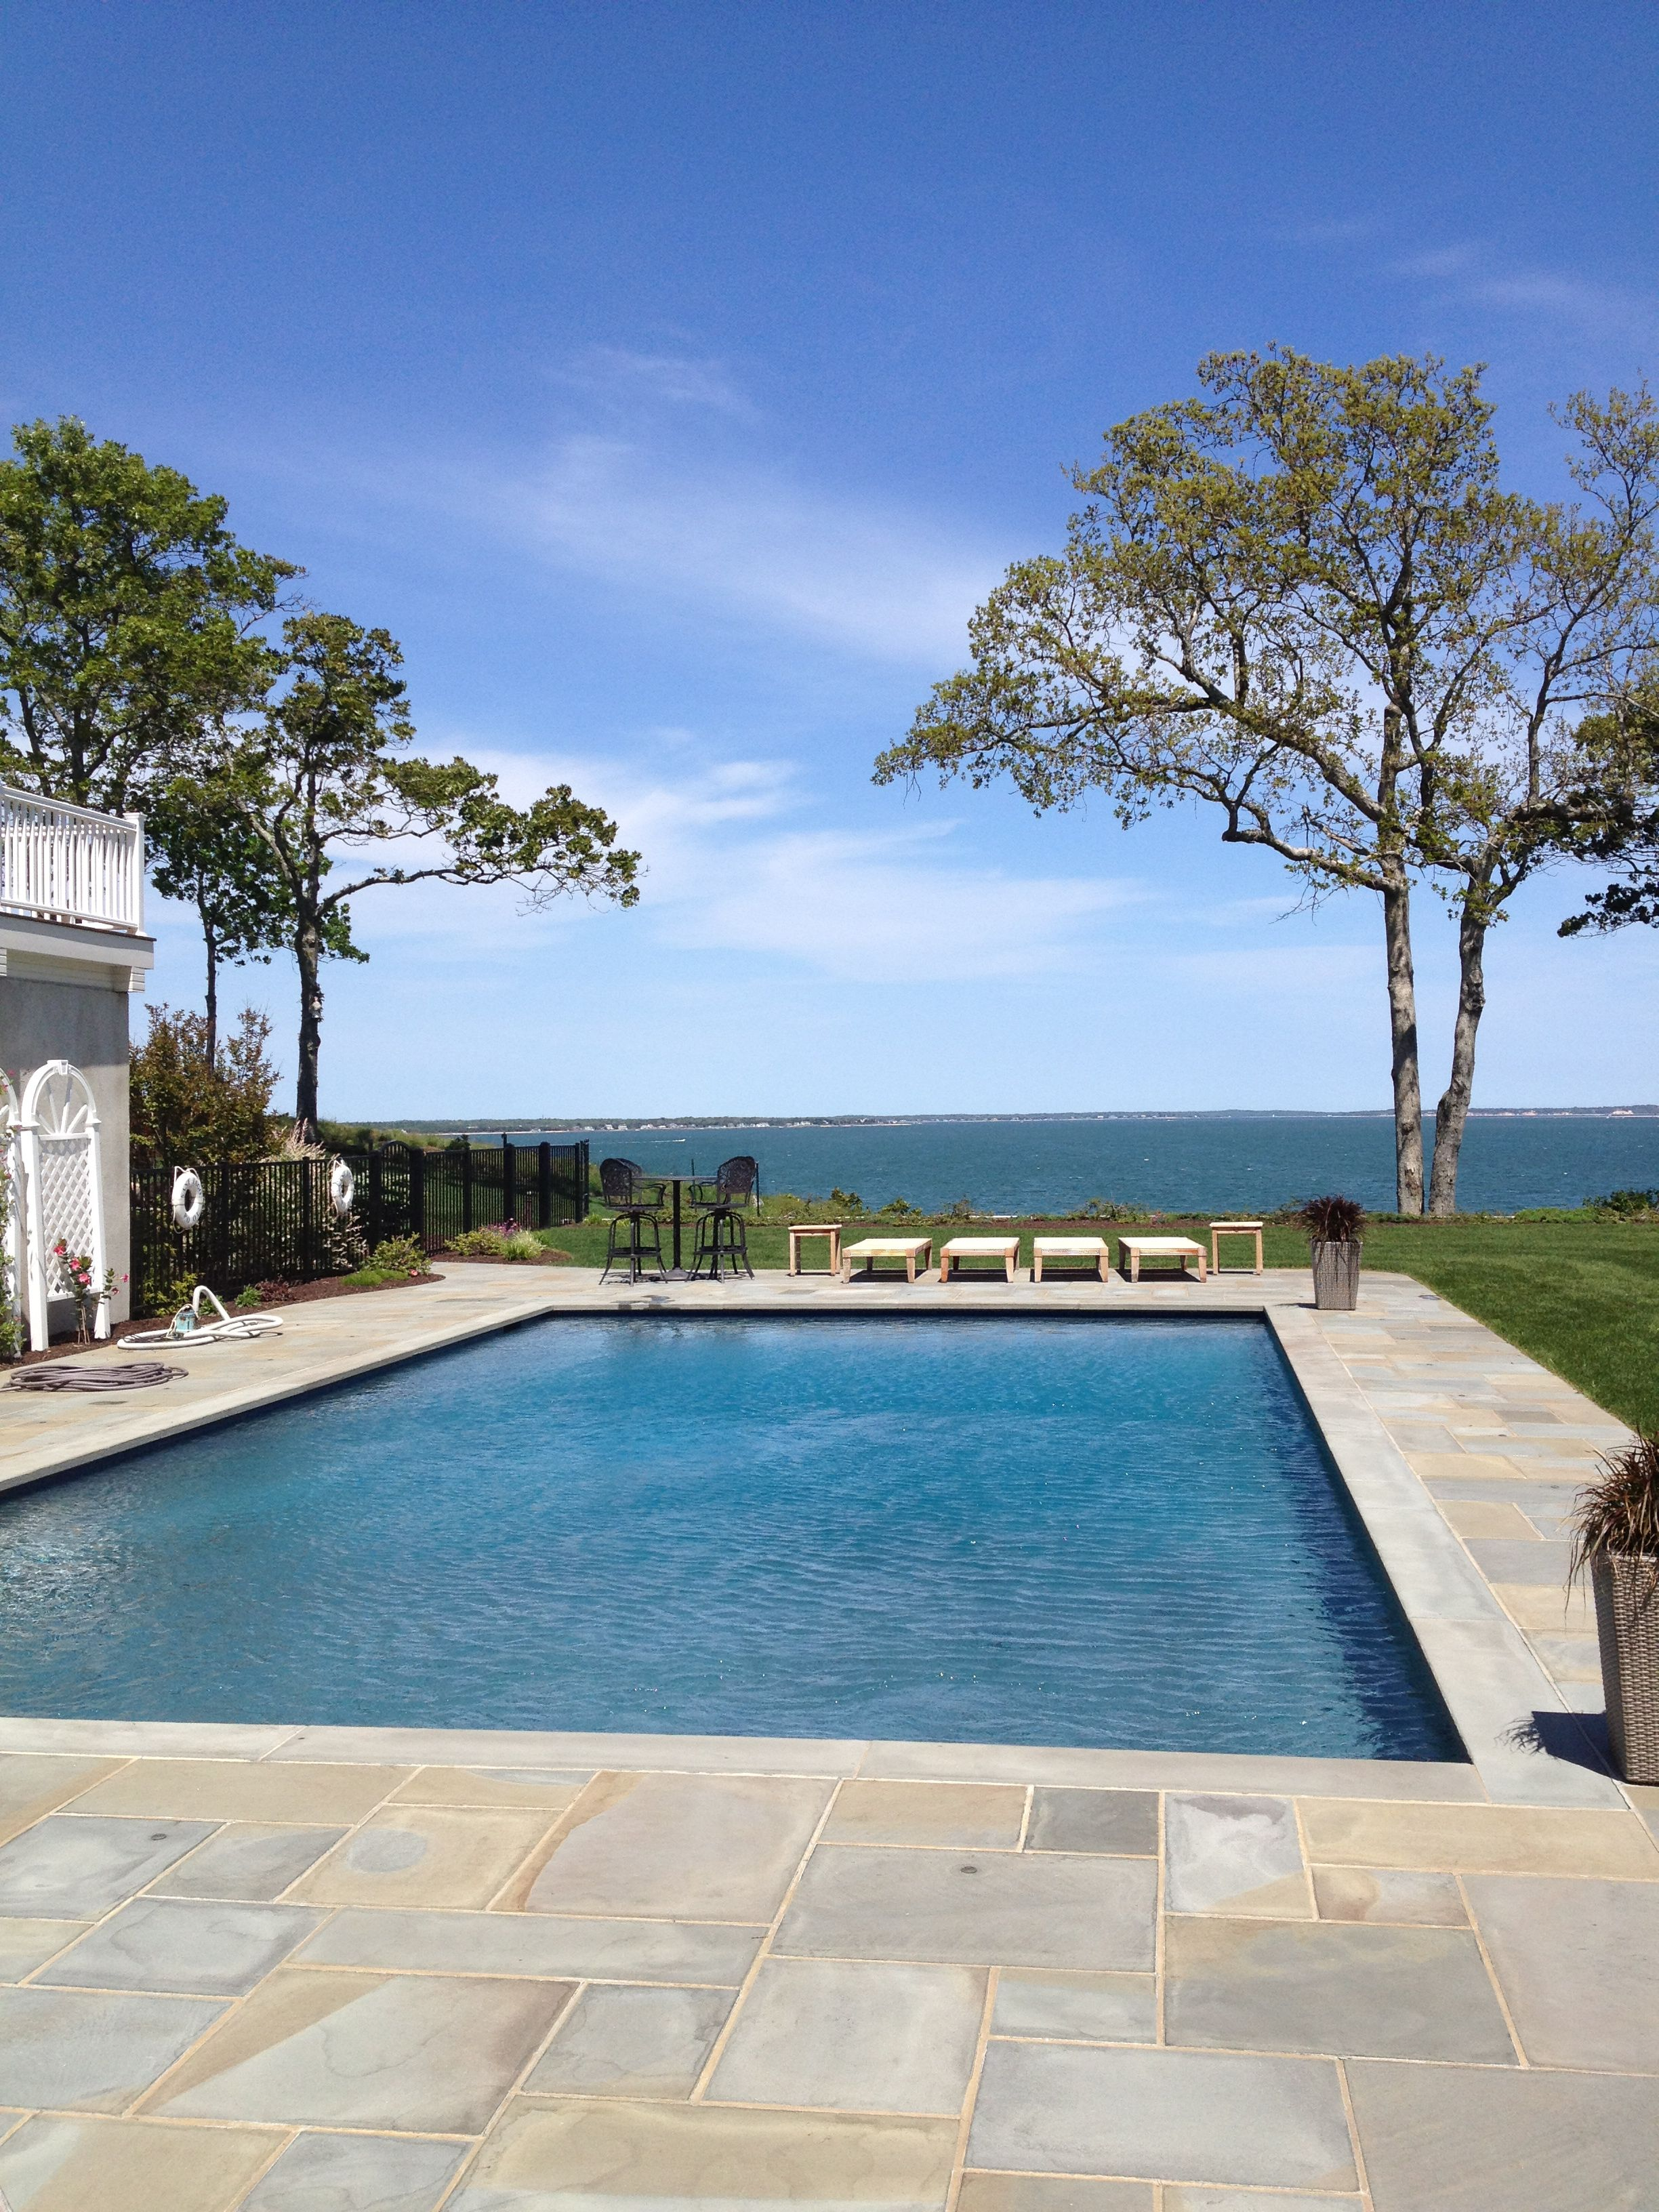 salt water pool design. Salt Water Pool With Gunite Finish And A Bench Along Shallow End For Sitting Views Of Design